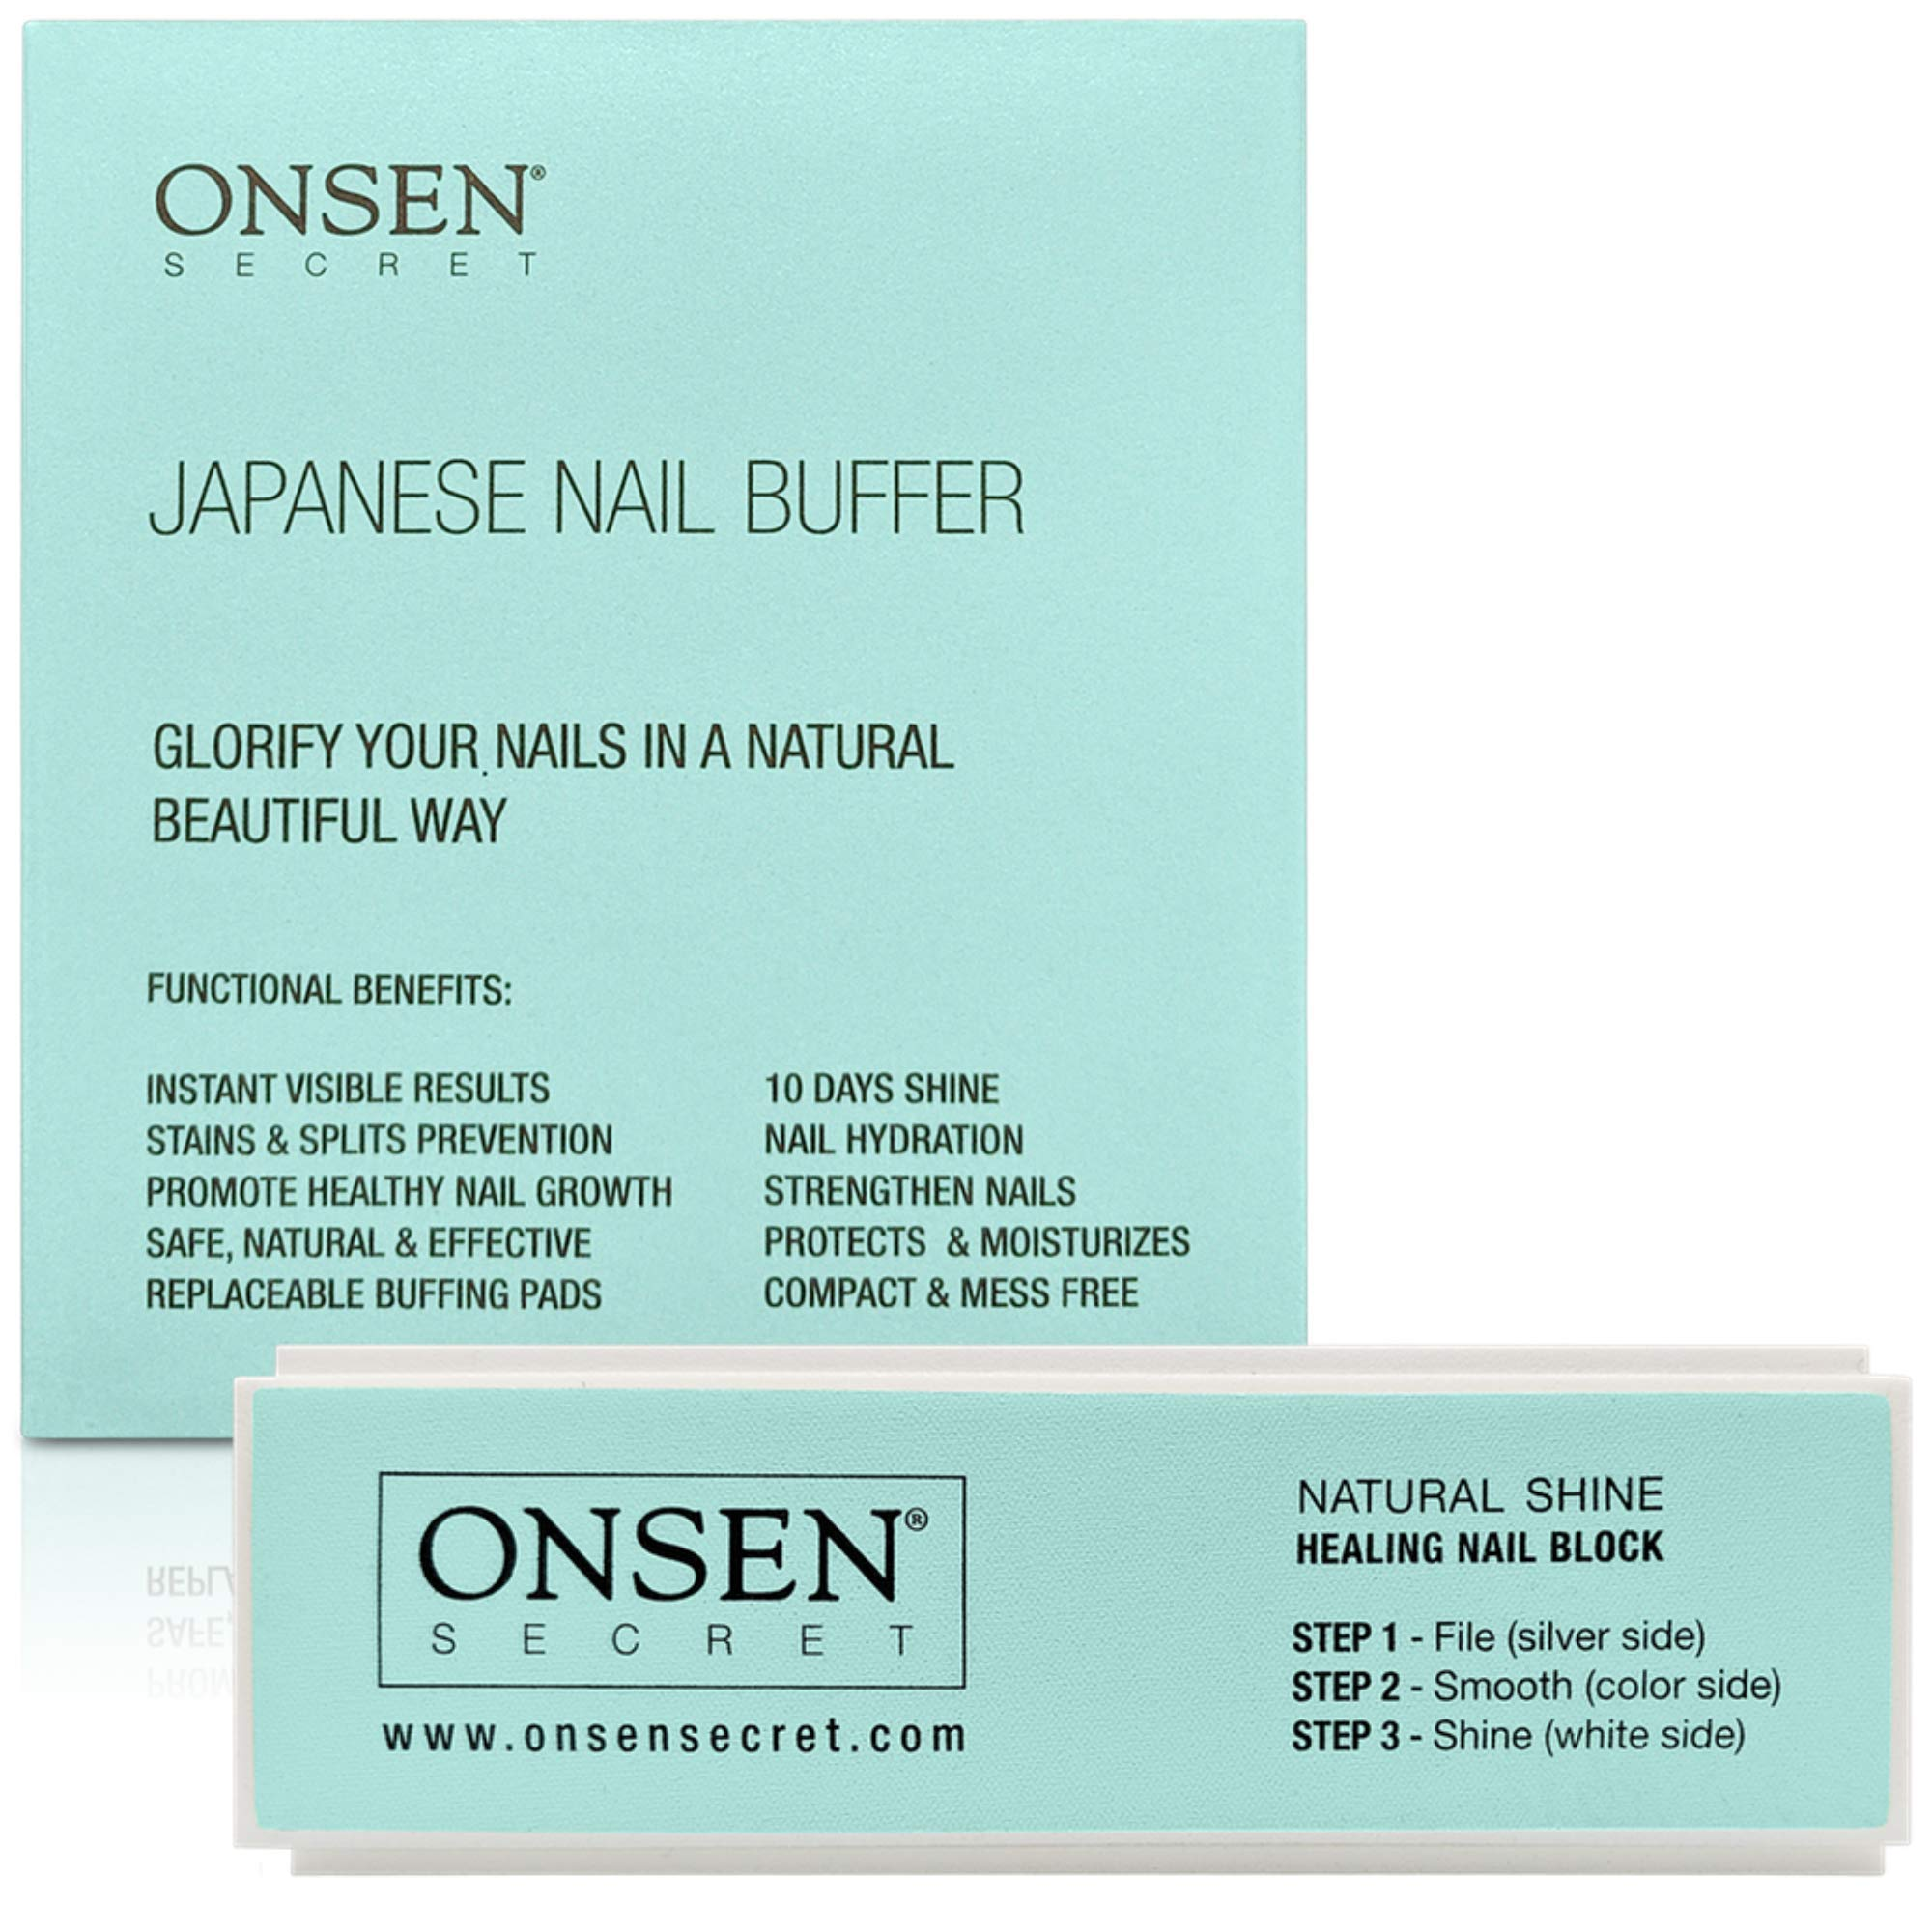 Onsen Secret Nail Buffer Block - Made Out Of Sacred Japanese Hot Spring Minerals - 3-Way Buffing Methods - File, Smooth, Shine - All Natural Nail Polisher For Professional Nail Care by Onsen